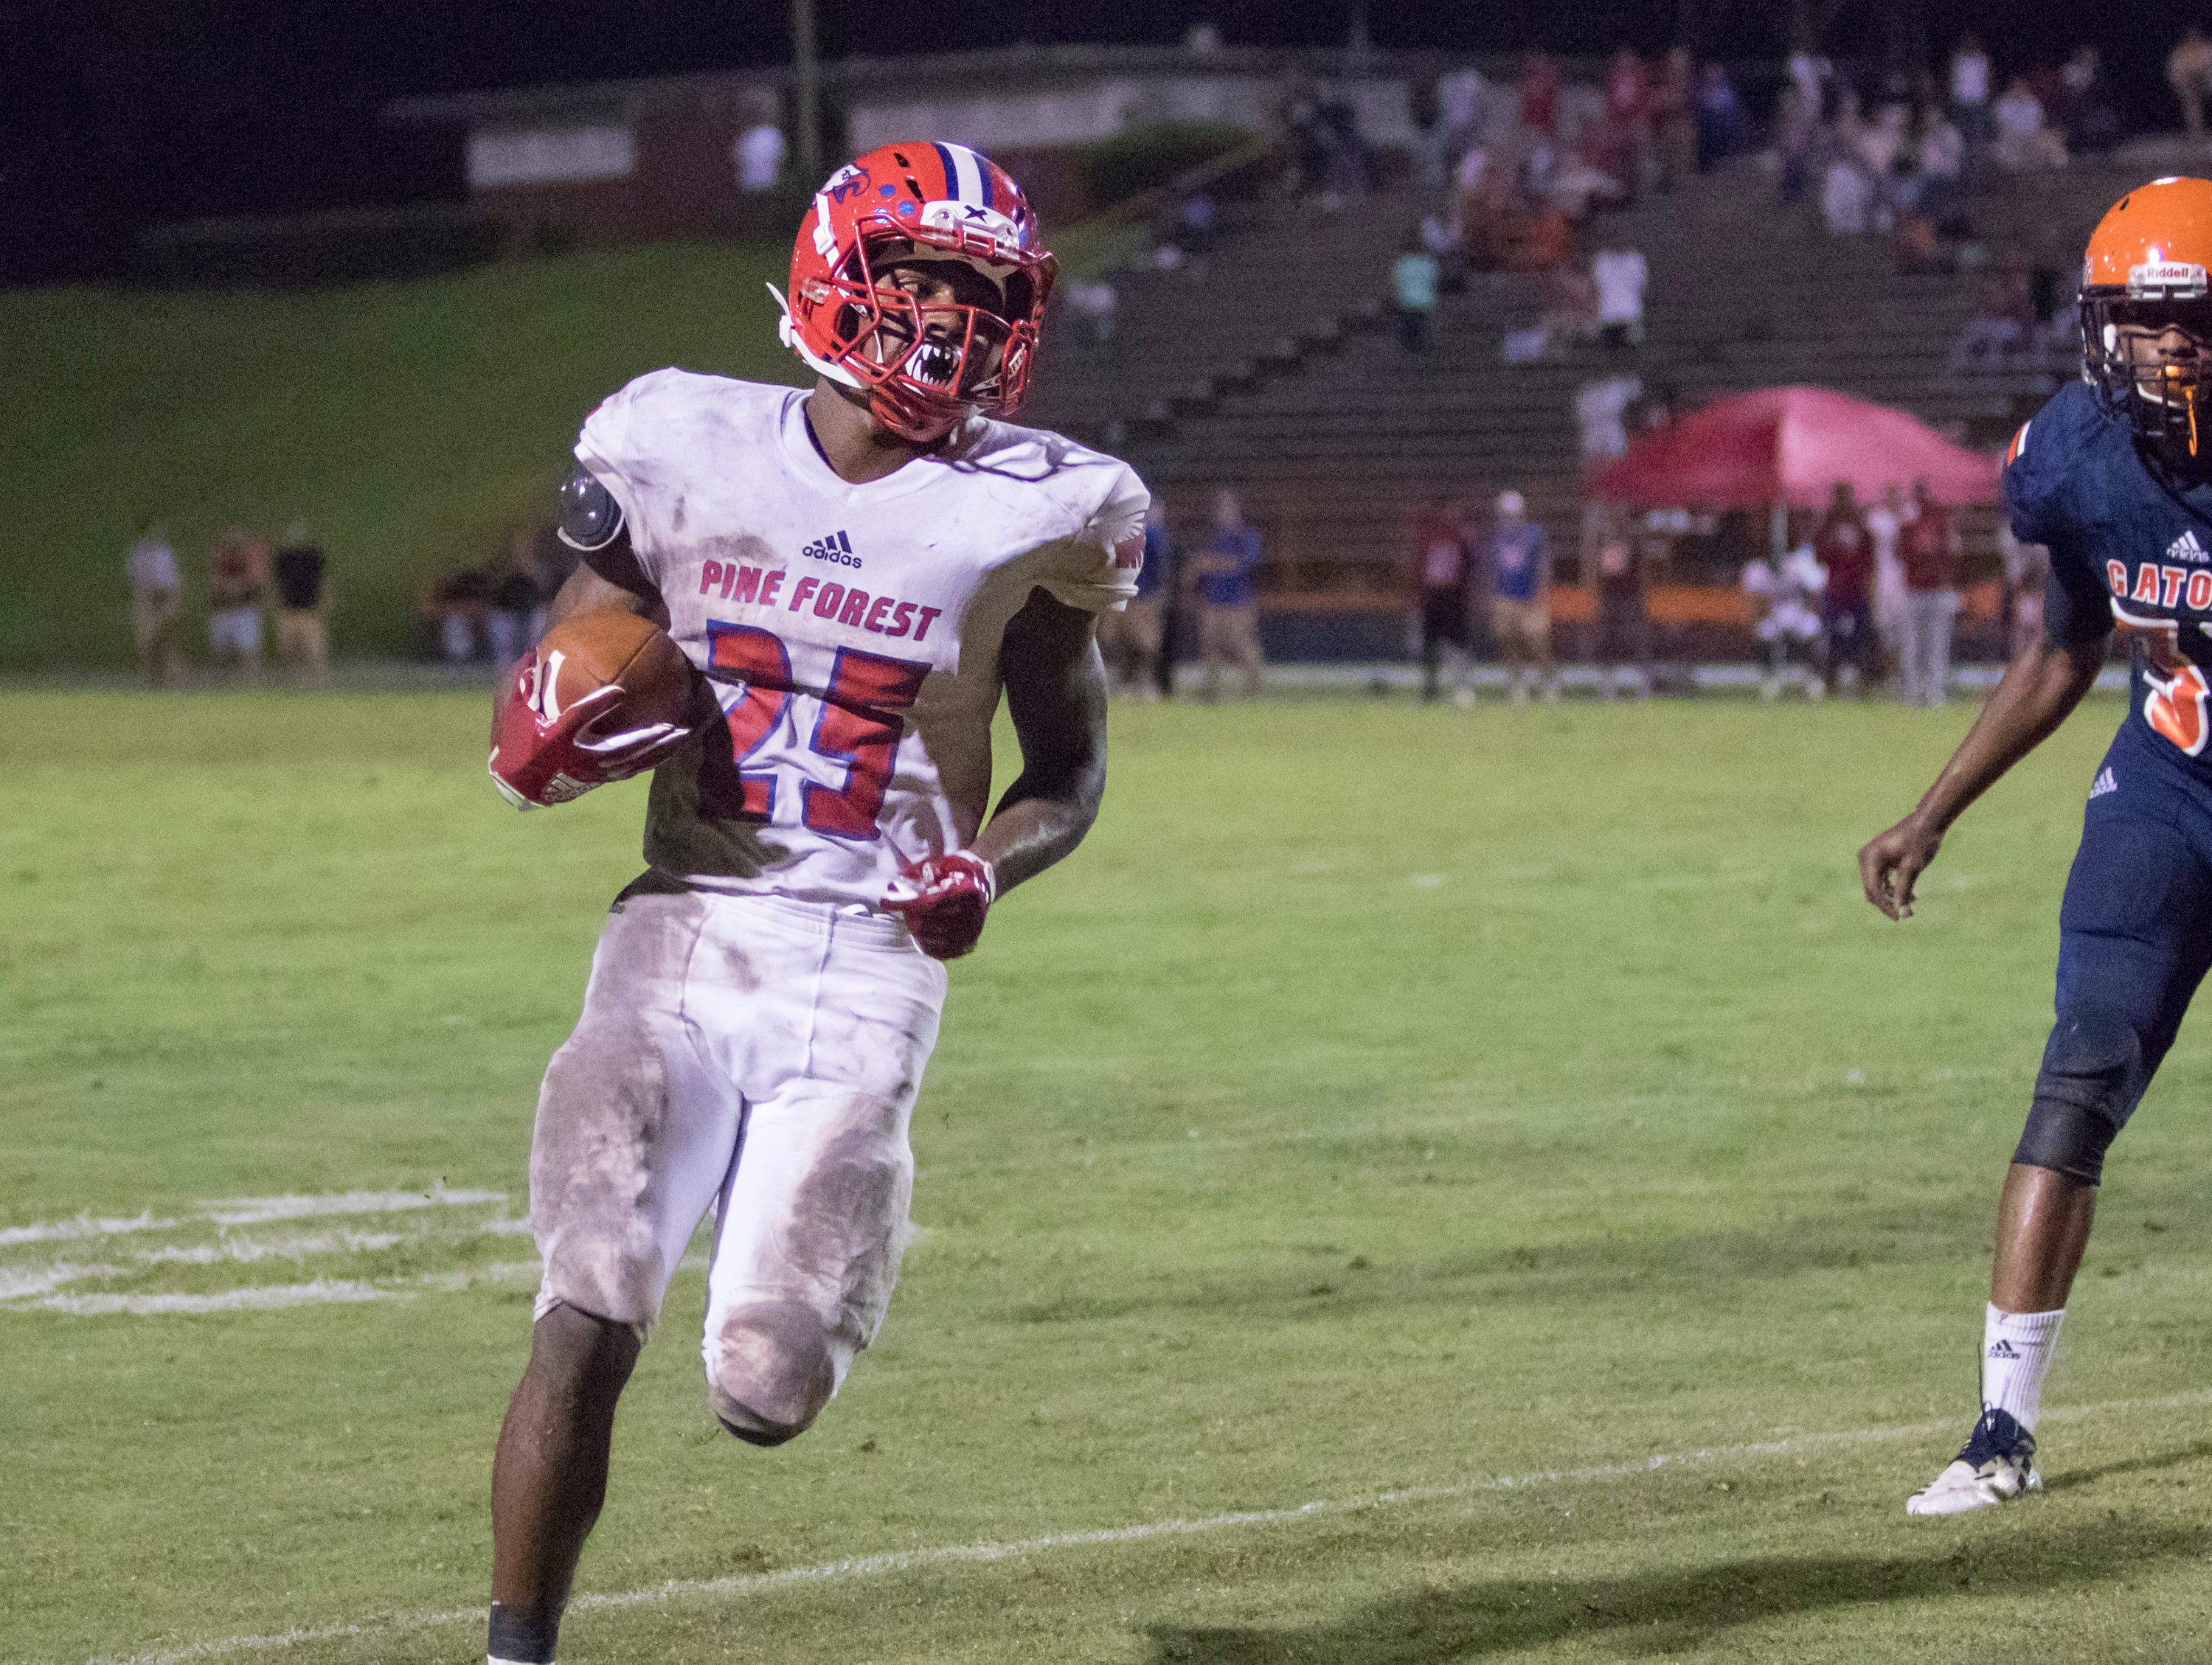 Anwar Lewis (25) runs in untouched for a touchdown and a 14-14 tie during the Pine Forest vs Escambia football game at Escambia High School in Pensacola on Friday, September 28, 2018.